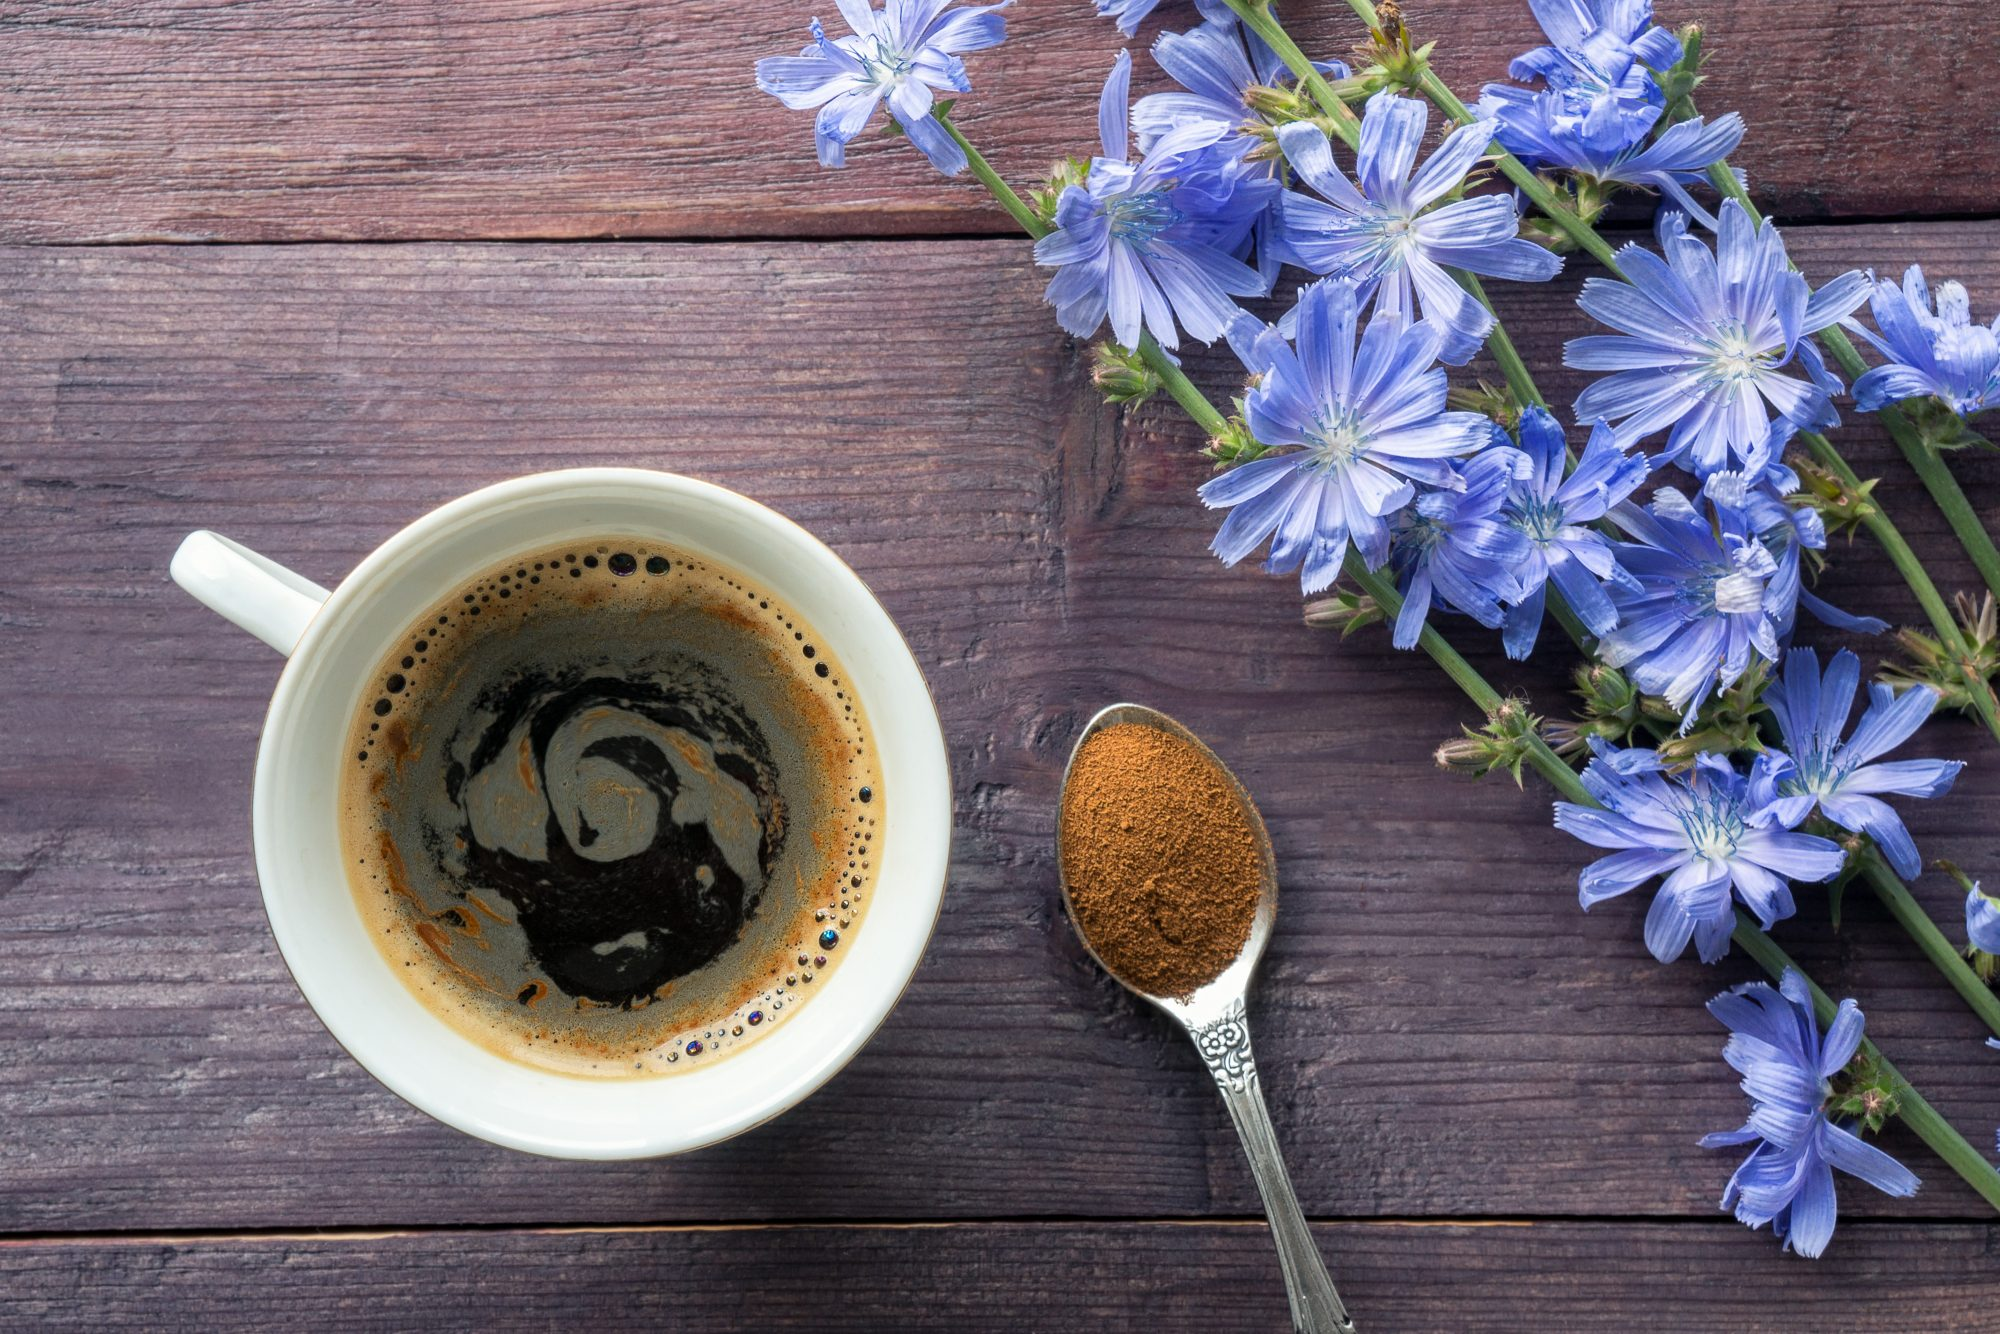 What Is Chicory—and What Does It Have to Do With Coffee?